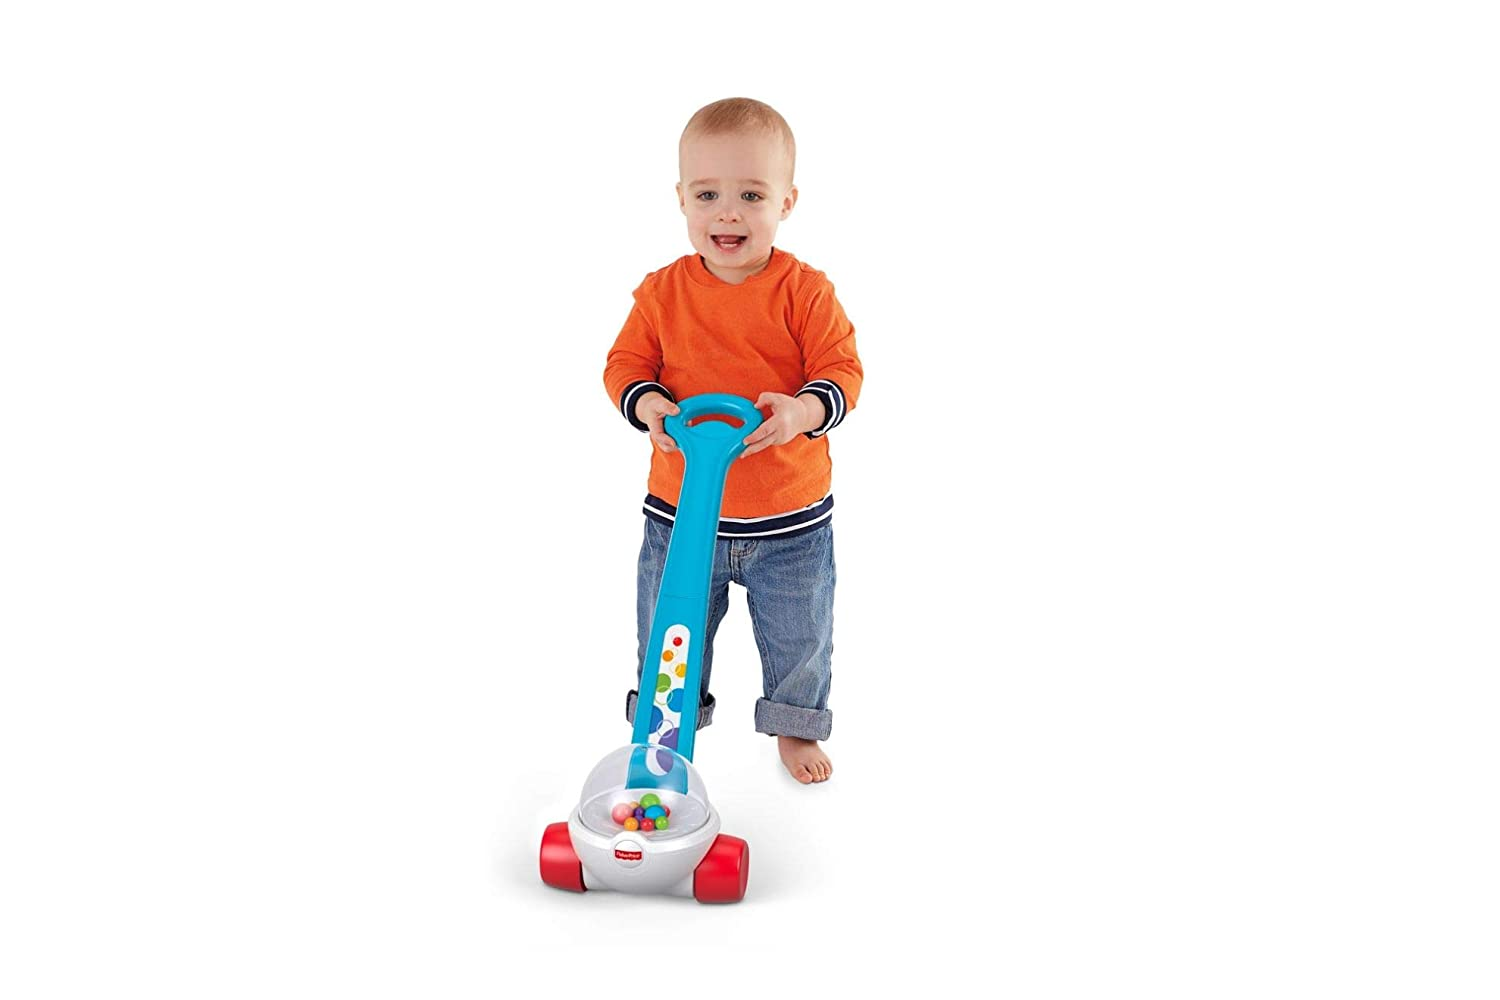 Fisher-Price Corn Popper, Toddler Push Along Toy with Ball-popping Sounds and Action, Toy for 1 Year Old Mattel FGY72